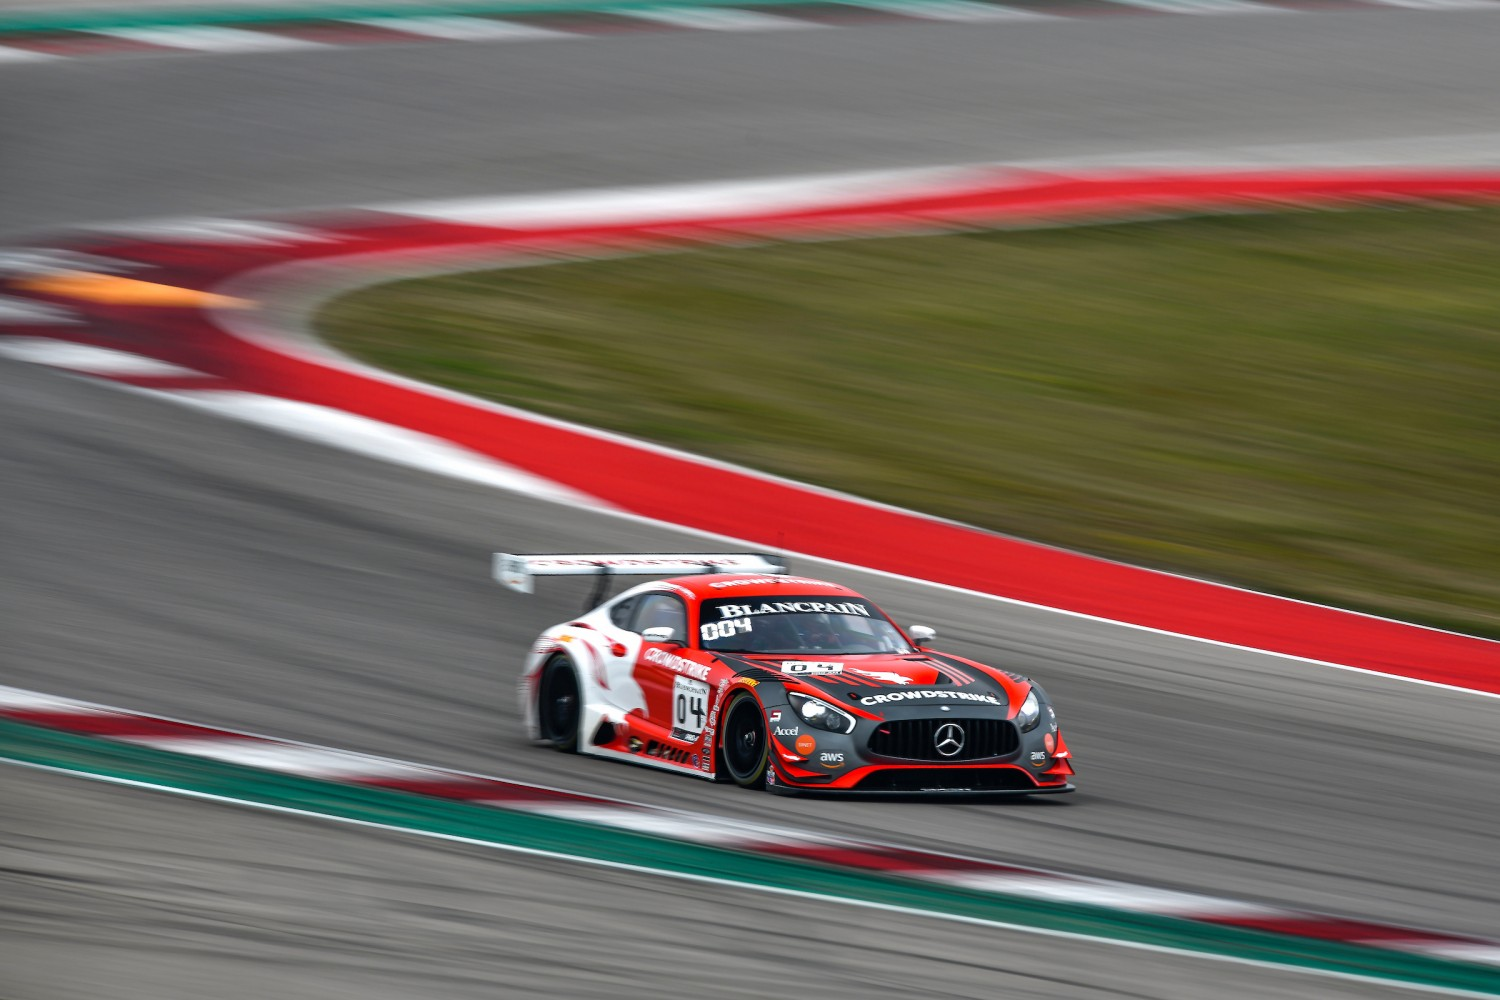 SRO Motorsports Group brings Blancpain GT World Challenge America to the world